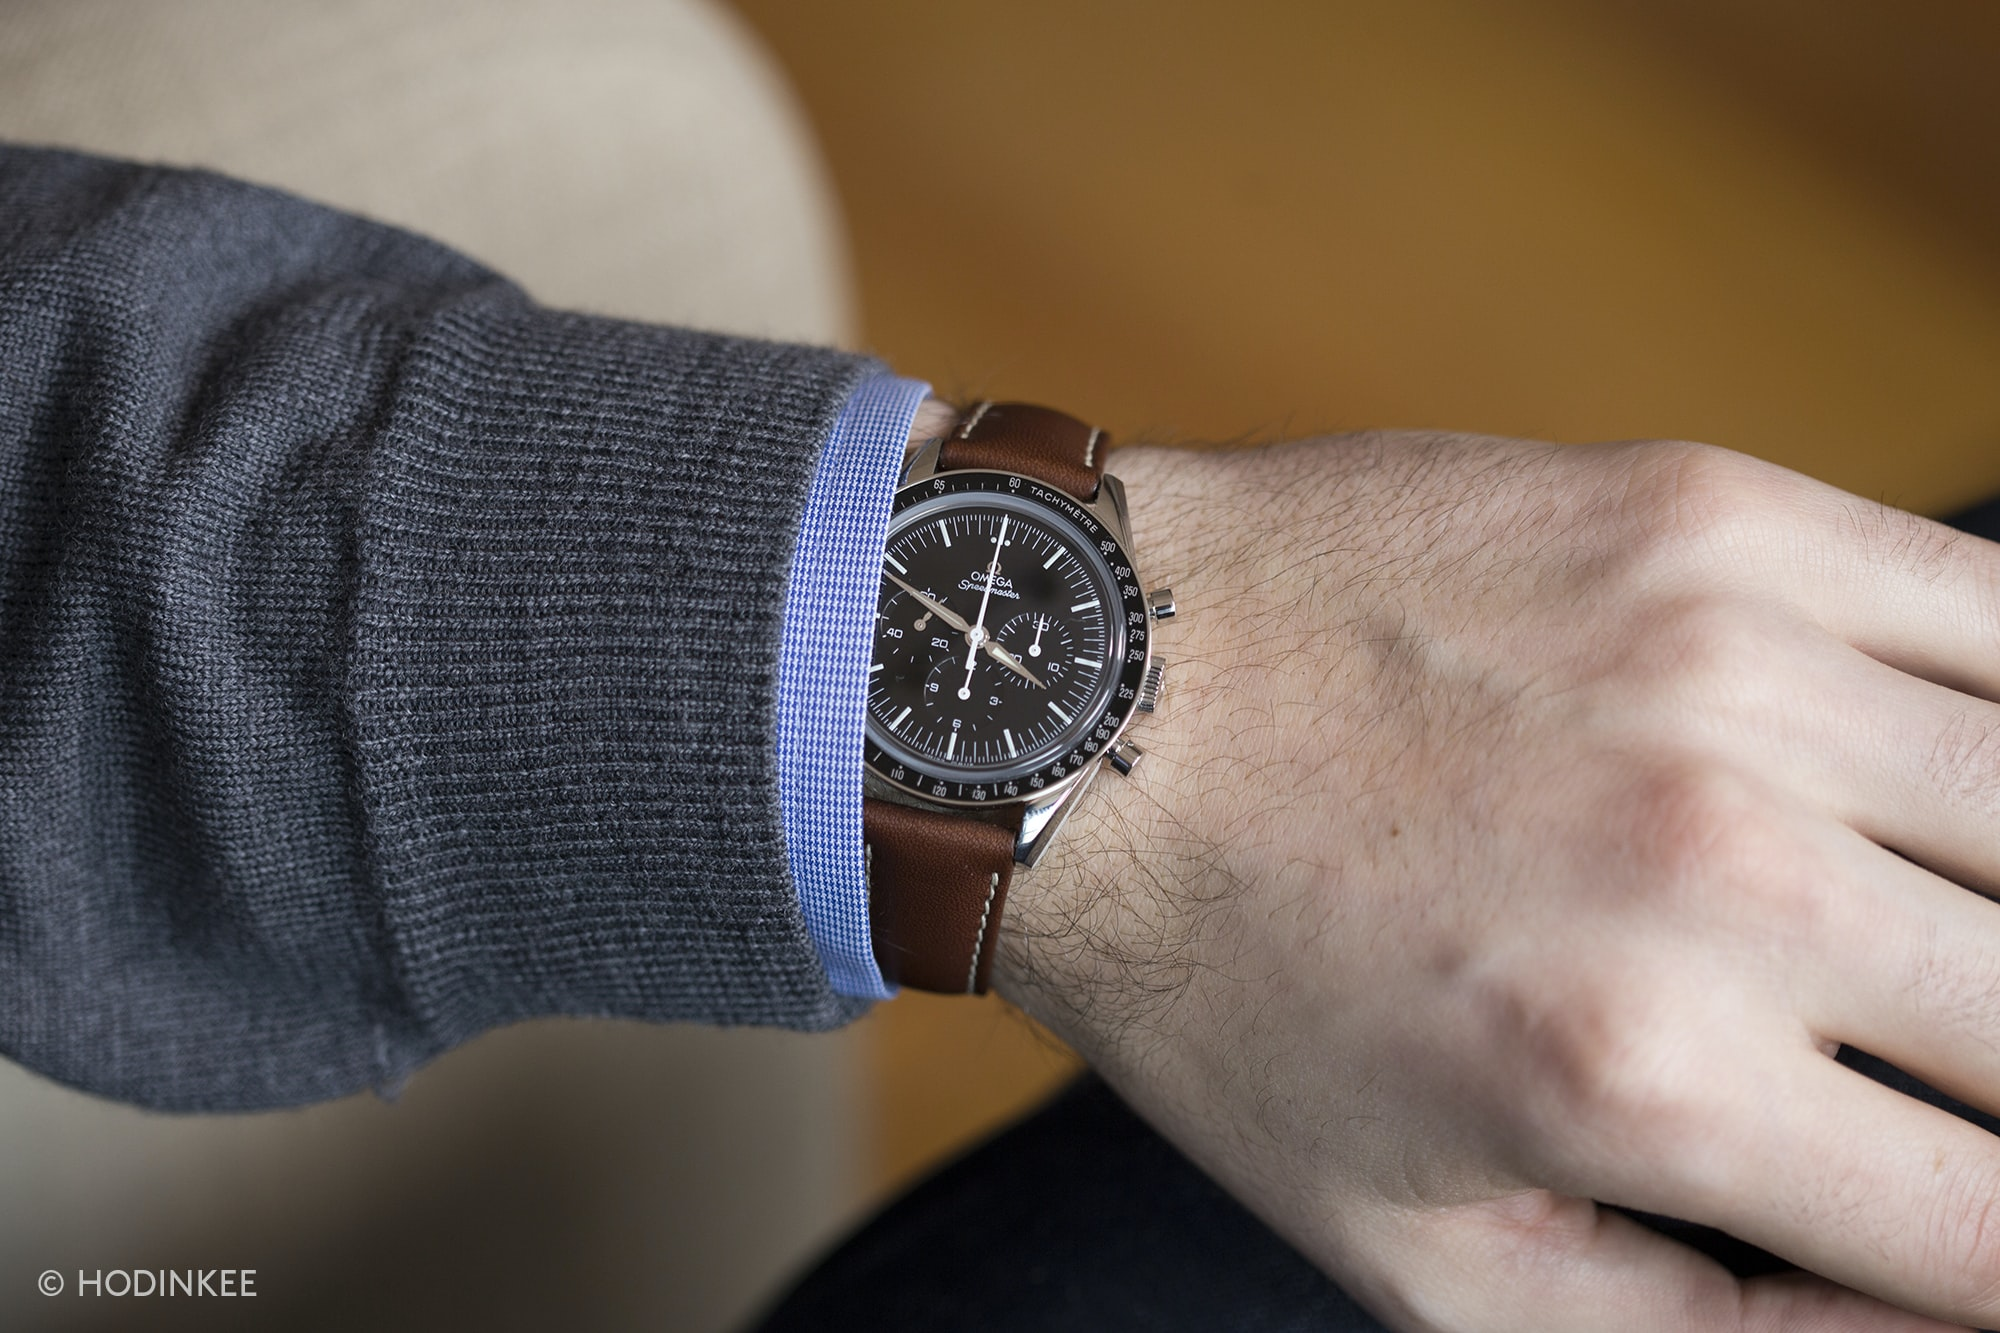 Omega Speedmaster First Omega In Space On Wrist A Week On The Wrist: The Omega Speedmaster 'First Omega In Space' A Week On The Wrist: The Omega Speedmaster 'First Omega In Space' 588A0224 copy